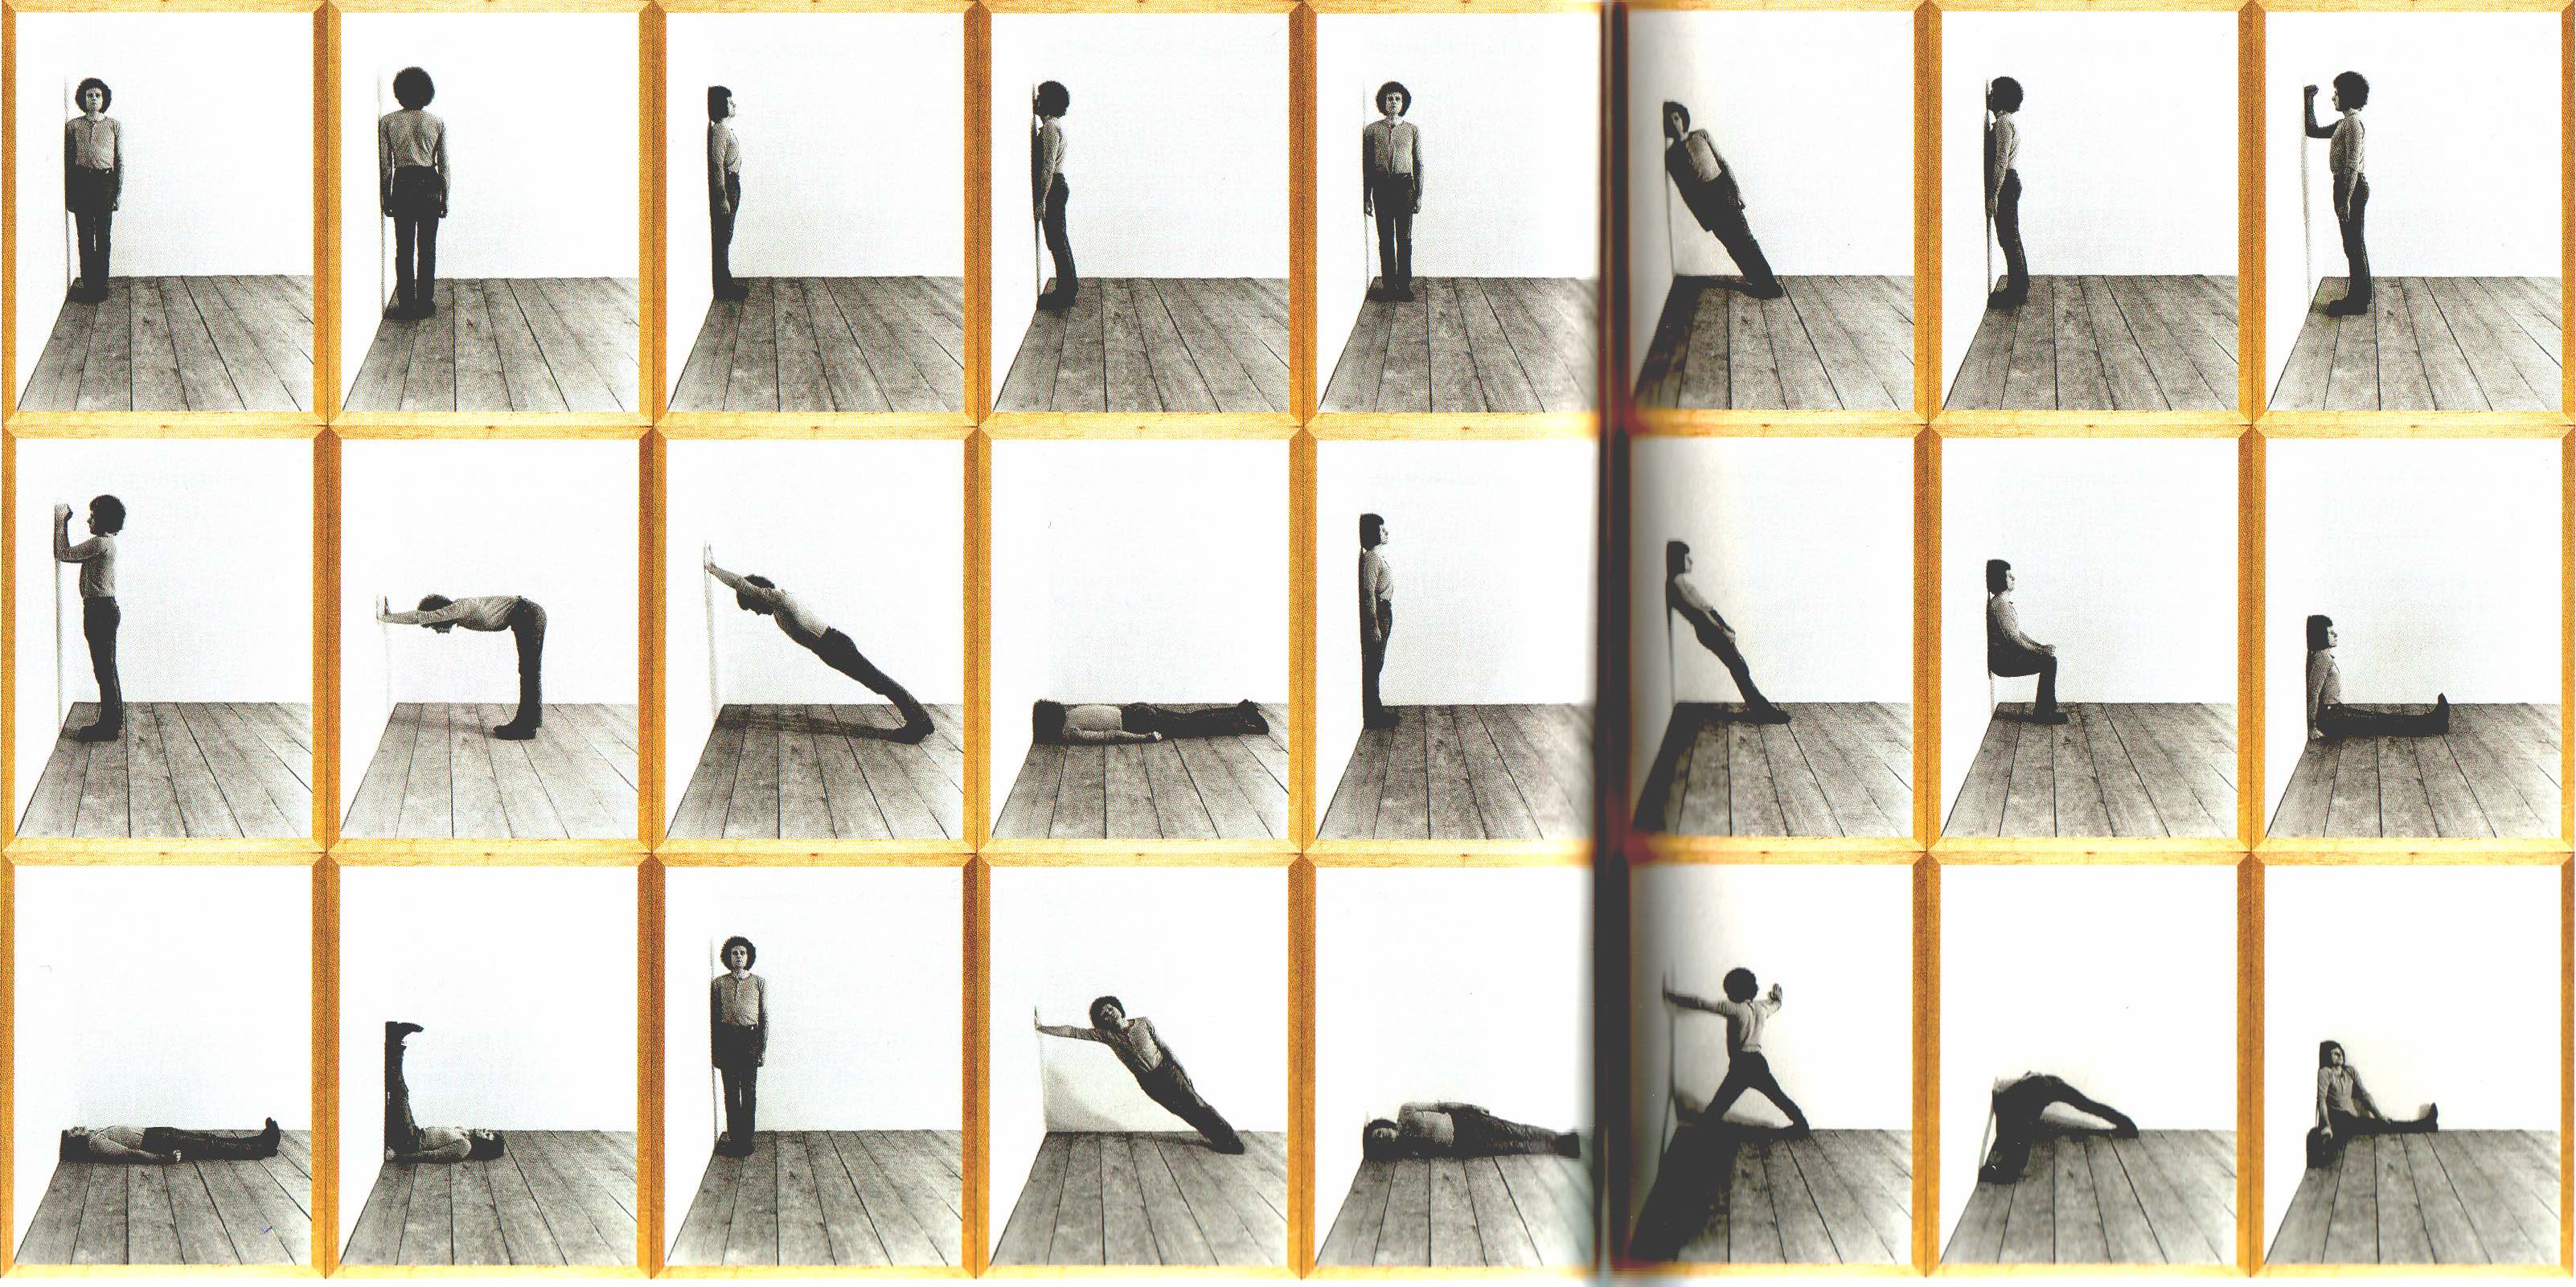 Klaus Rinke, Oden, Wand, Ecke, Raum, 1970, 24 photographies, collection MNAM, Paris